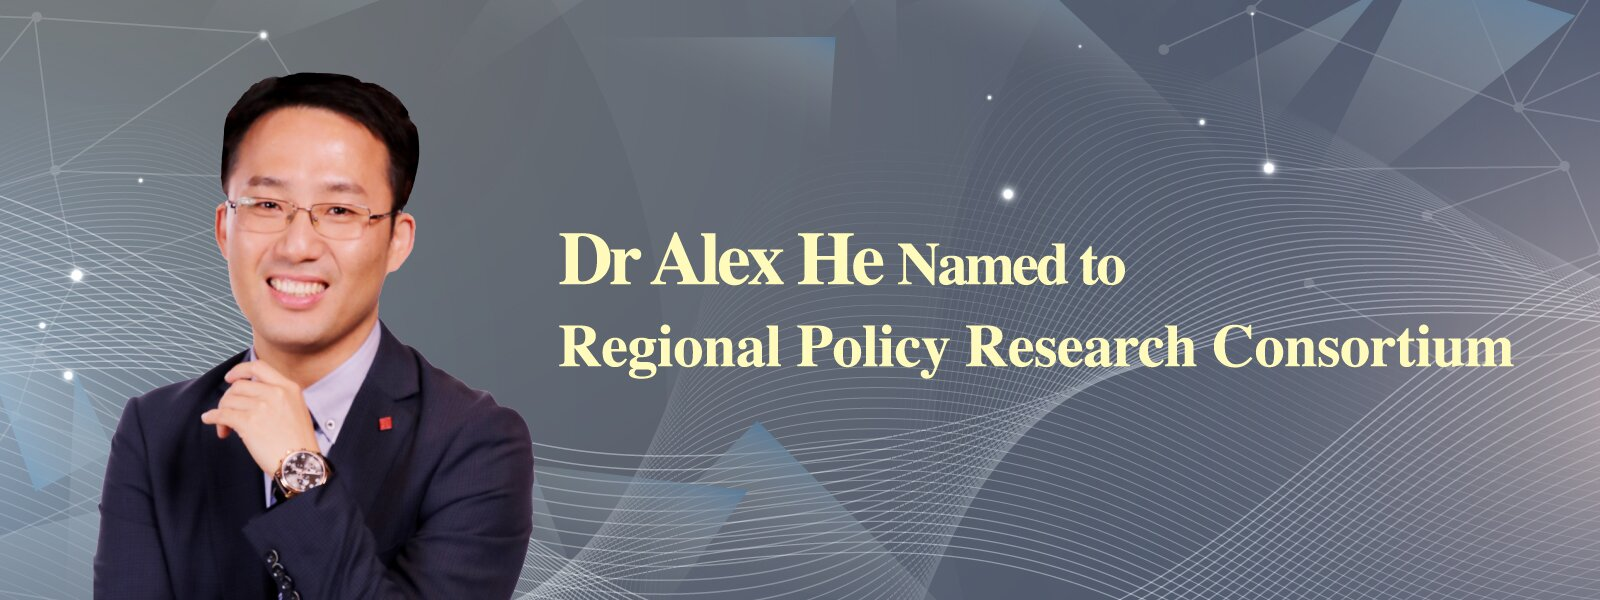 Dr Alex He Named to Regional Policy Research Consortium